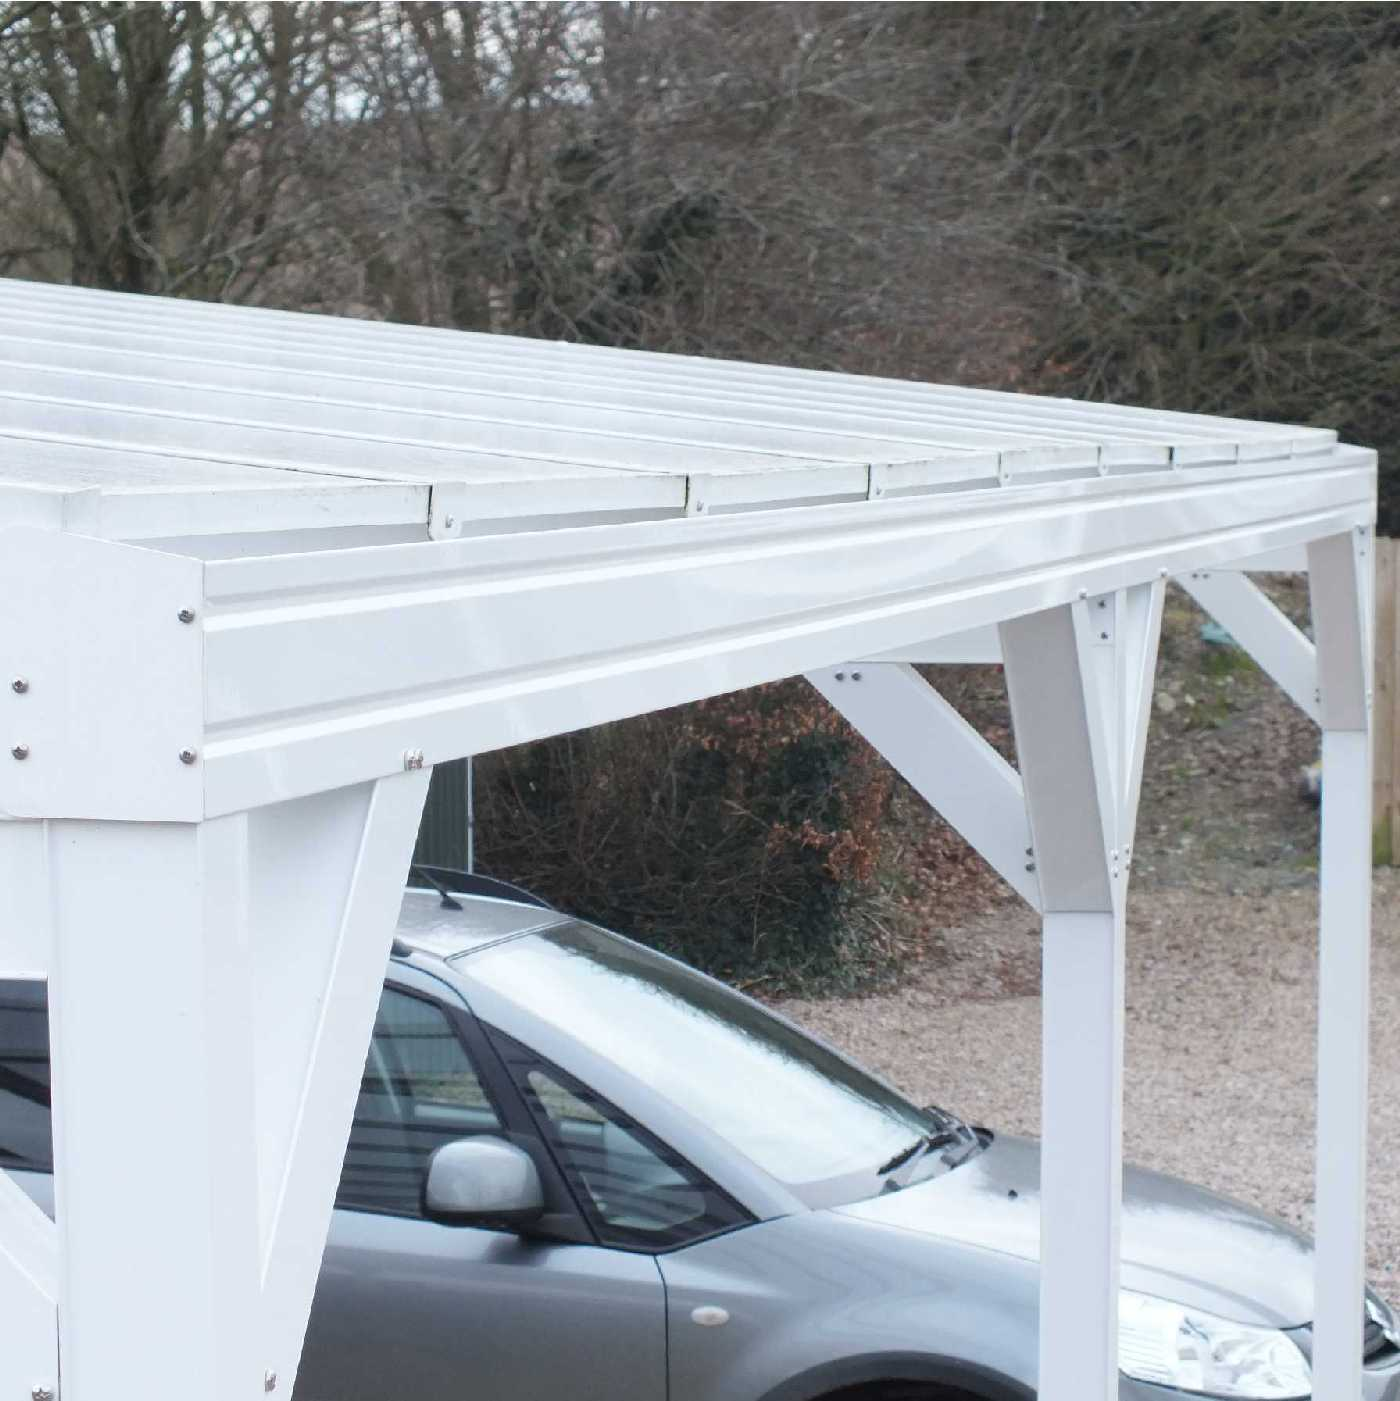 Omega Smart Free-Standing, MonoPitch Roof Canopy with 16mm Polycarbonate Glazing - 5.2m (W) x 2.5m (P), (6) Supporting Posts from Omega Build